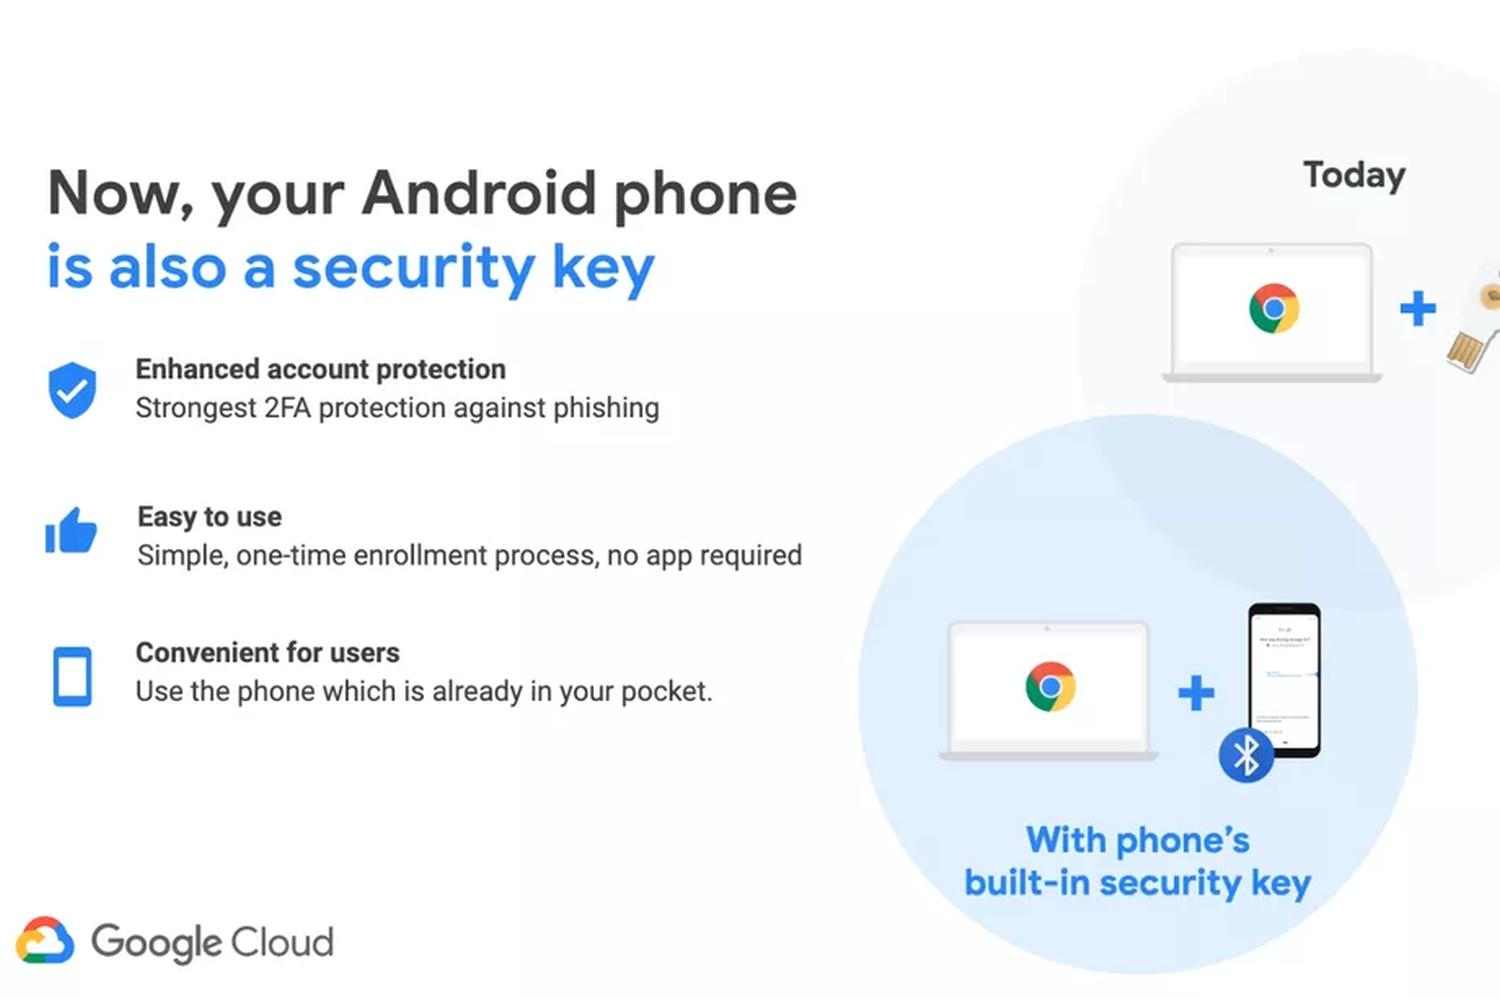 android smartphone security key